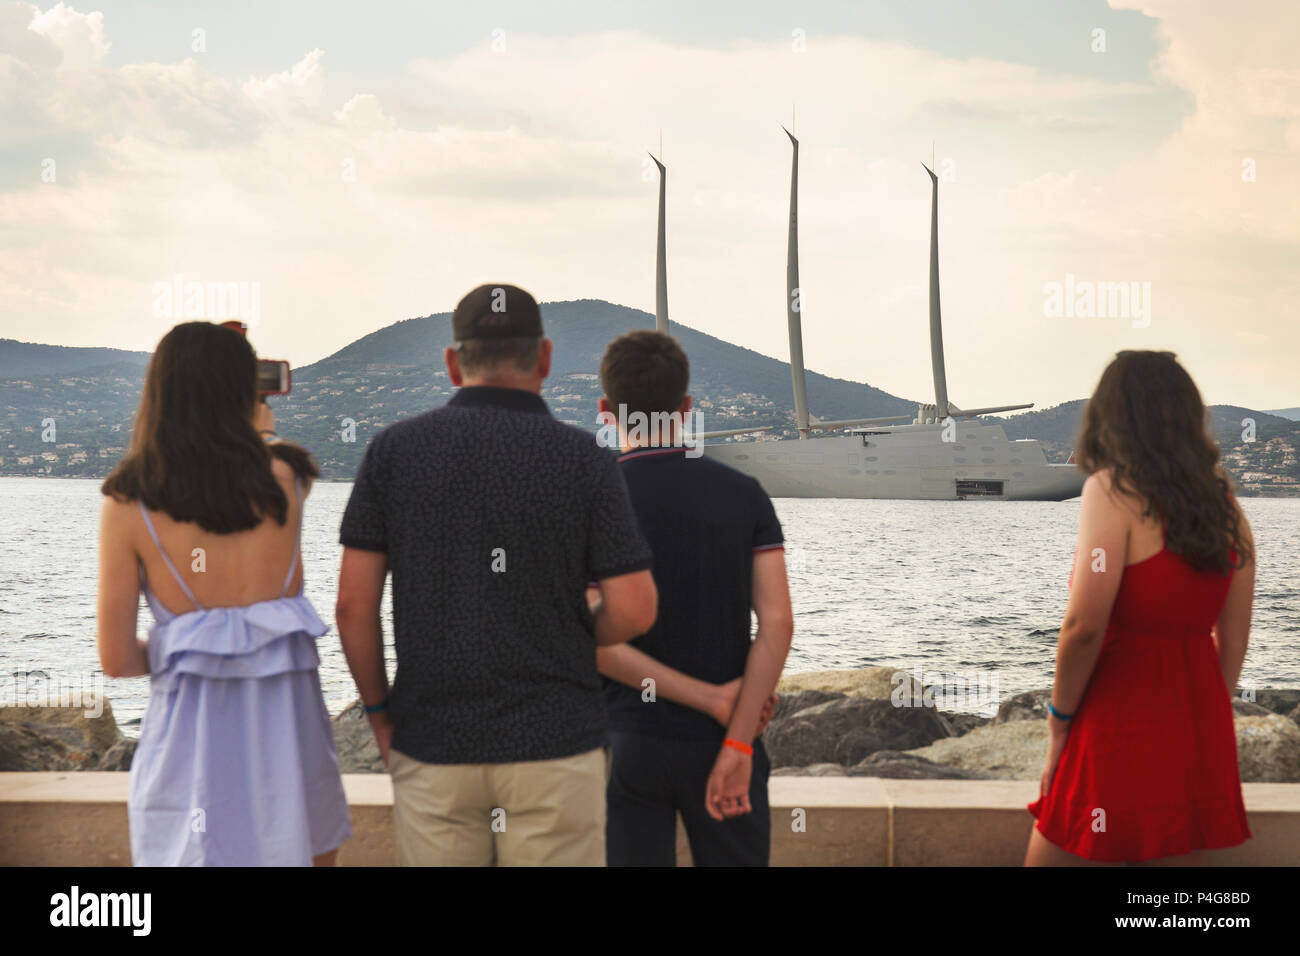 Saint Tropez. France 21th, 2018. People look at the big 'Sailing A' in front of Saint Tropez Gulf. The  Sailing A is the biggest sailing yacht in the world, build in Germany with the most advanced technology. Lenght 142.81 meters; 12700 tons, designed by Phillippe Starck and Dolker & Voges. The owner of the ship is Andrei Melnichenko from Russia. Photo Alejandro Sala/Alamy Llive News - Stock Image